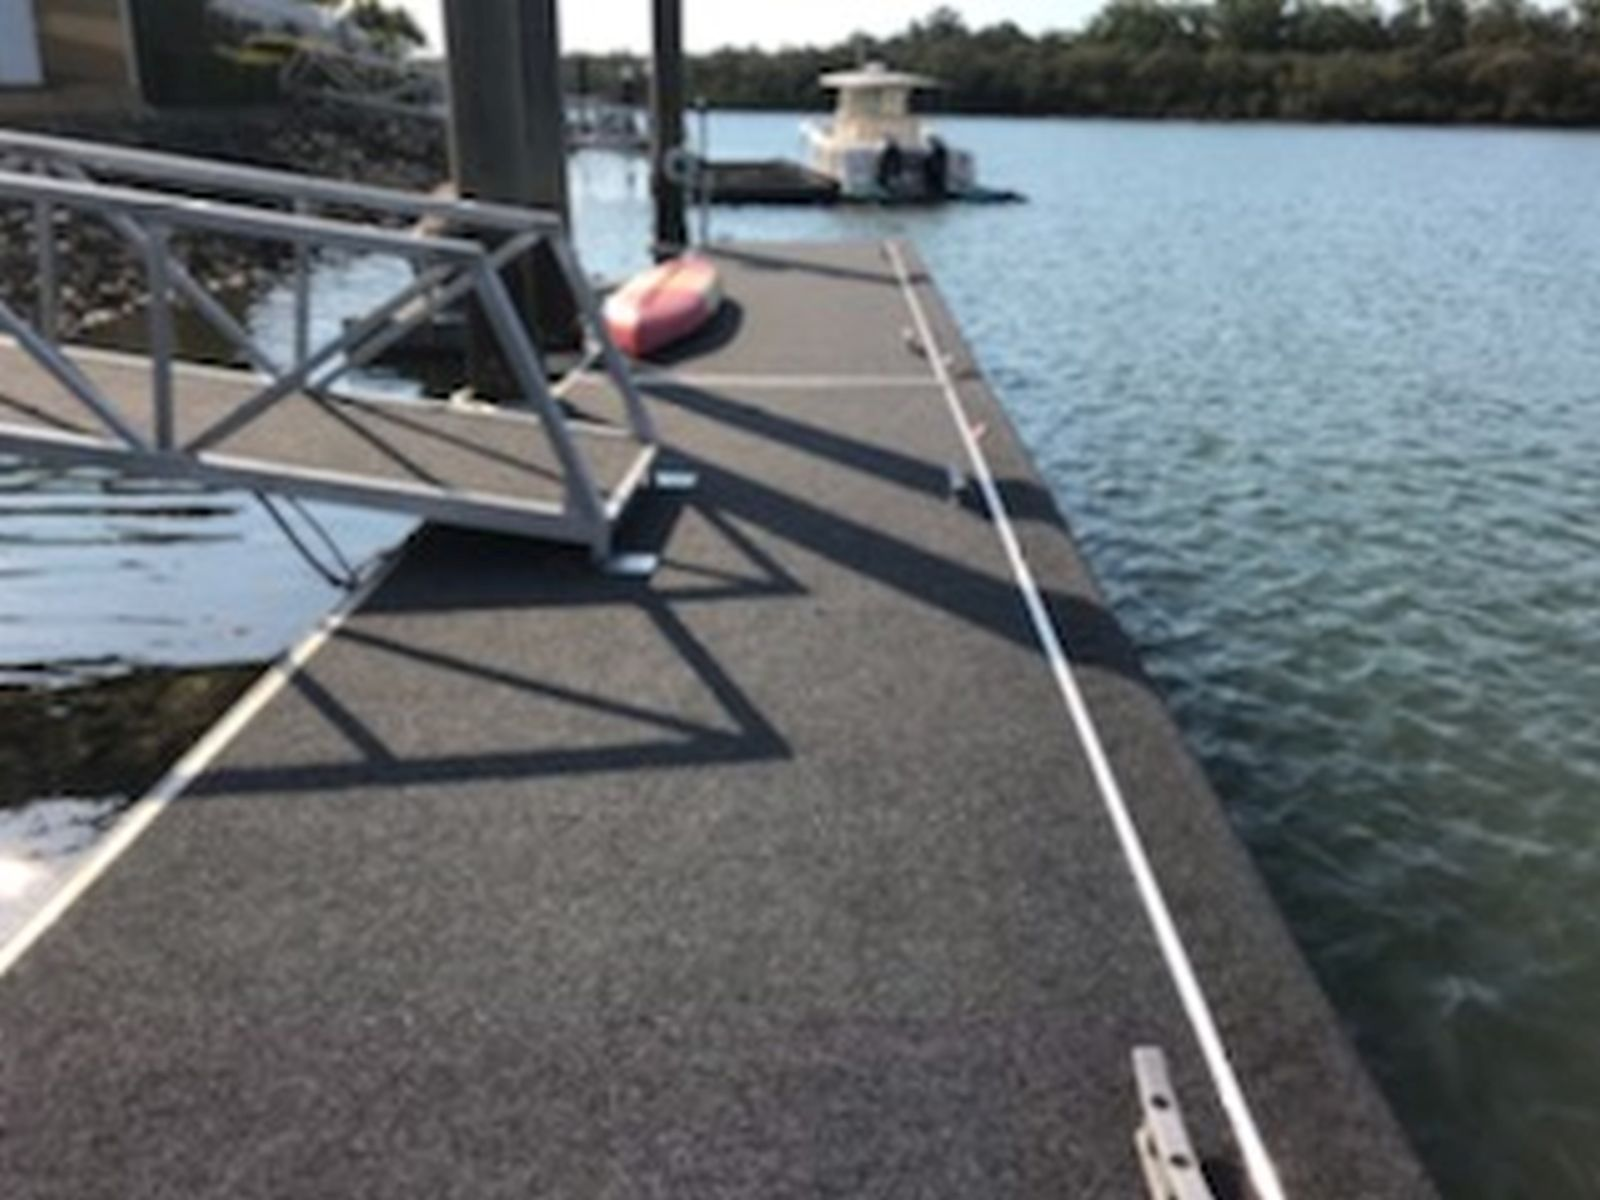 Jetties, Pontoons, Breakwater, & Groins Explained